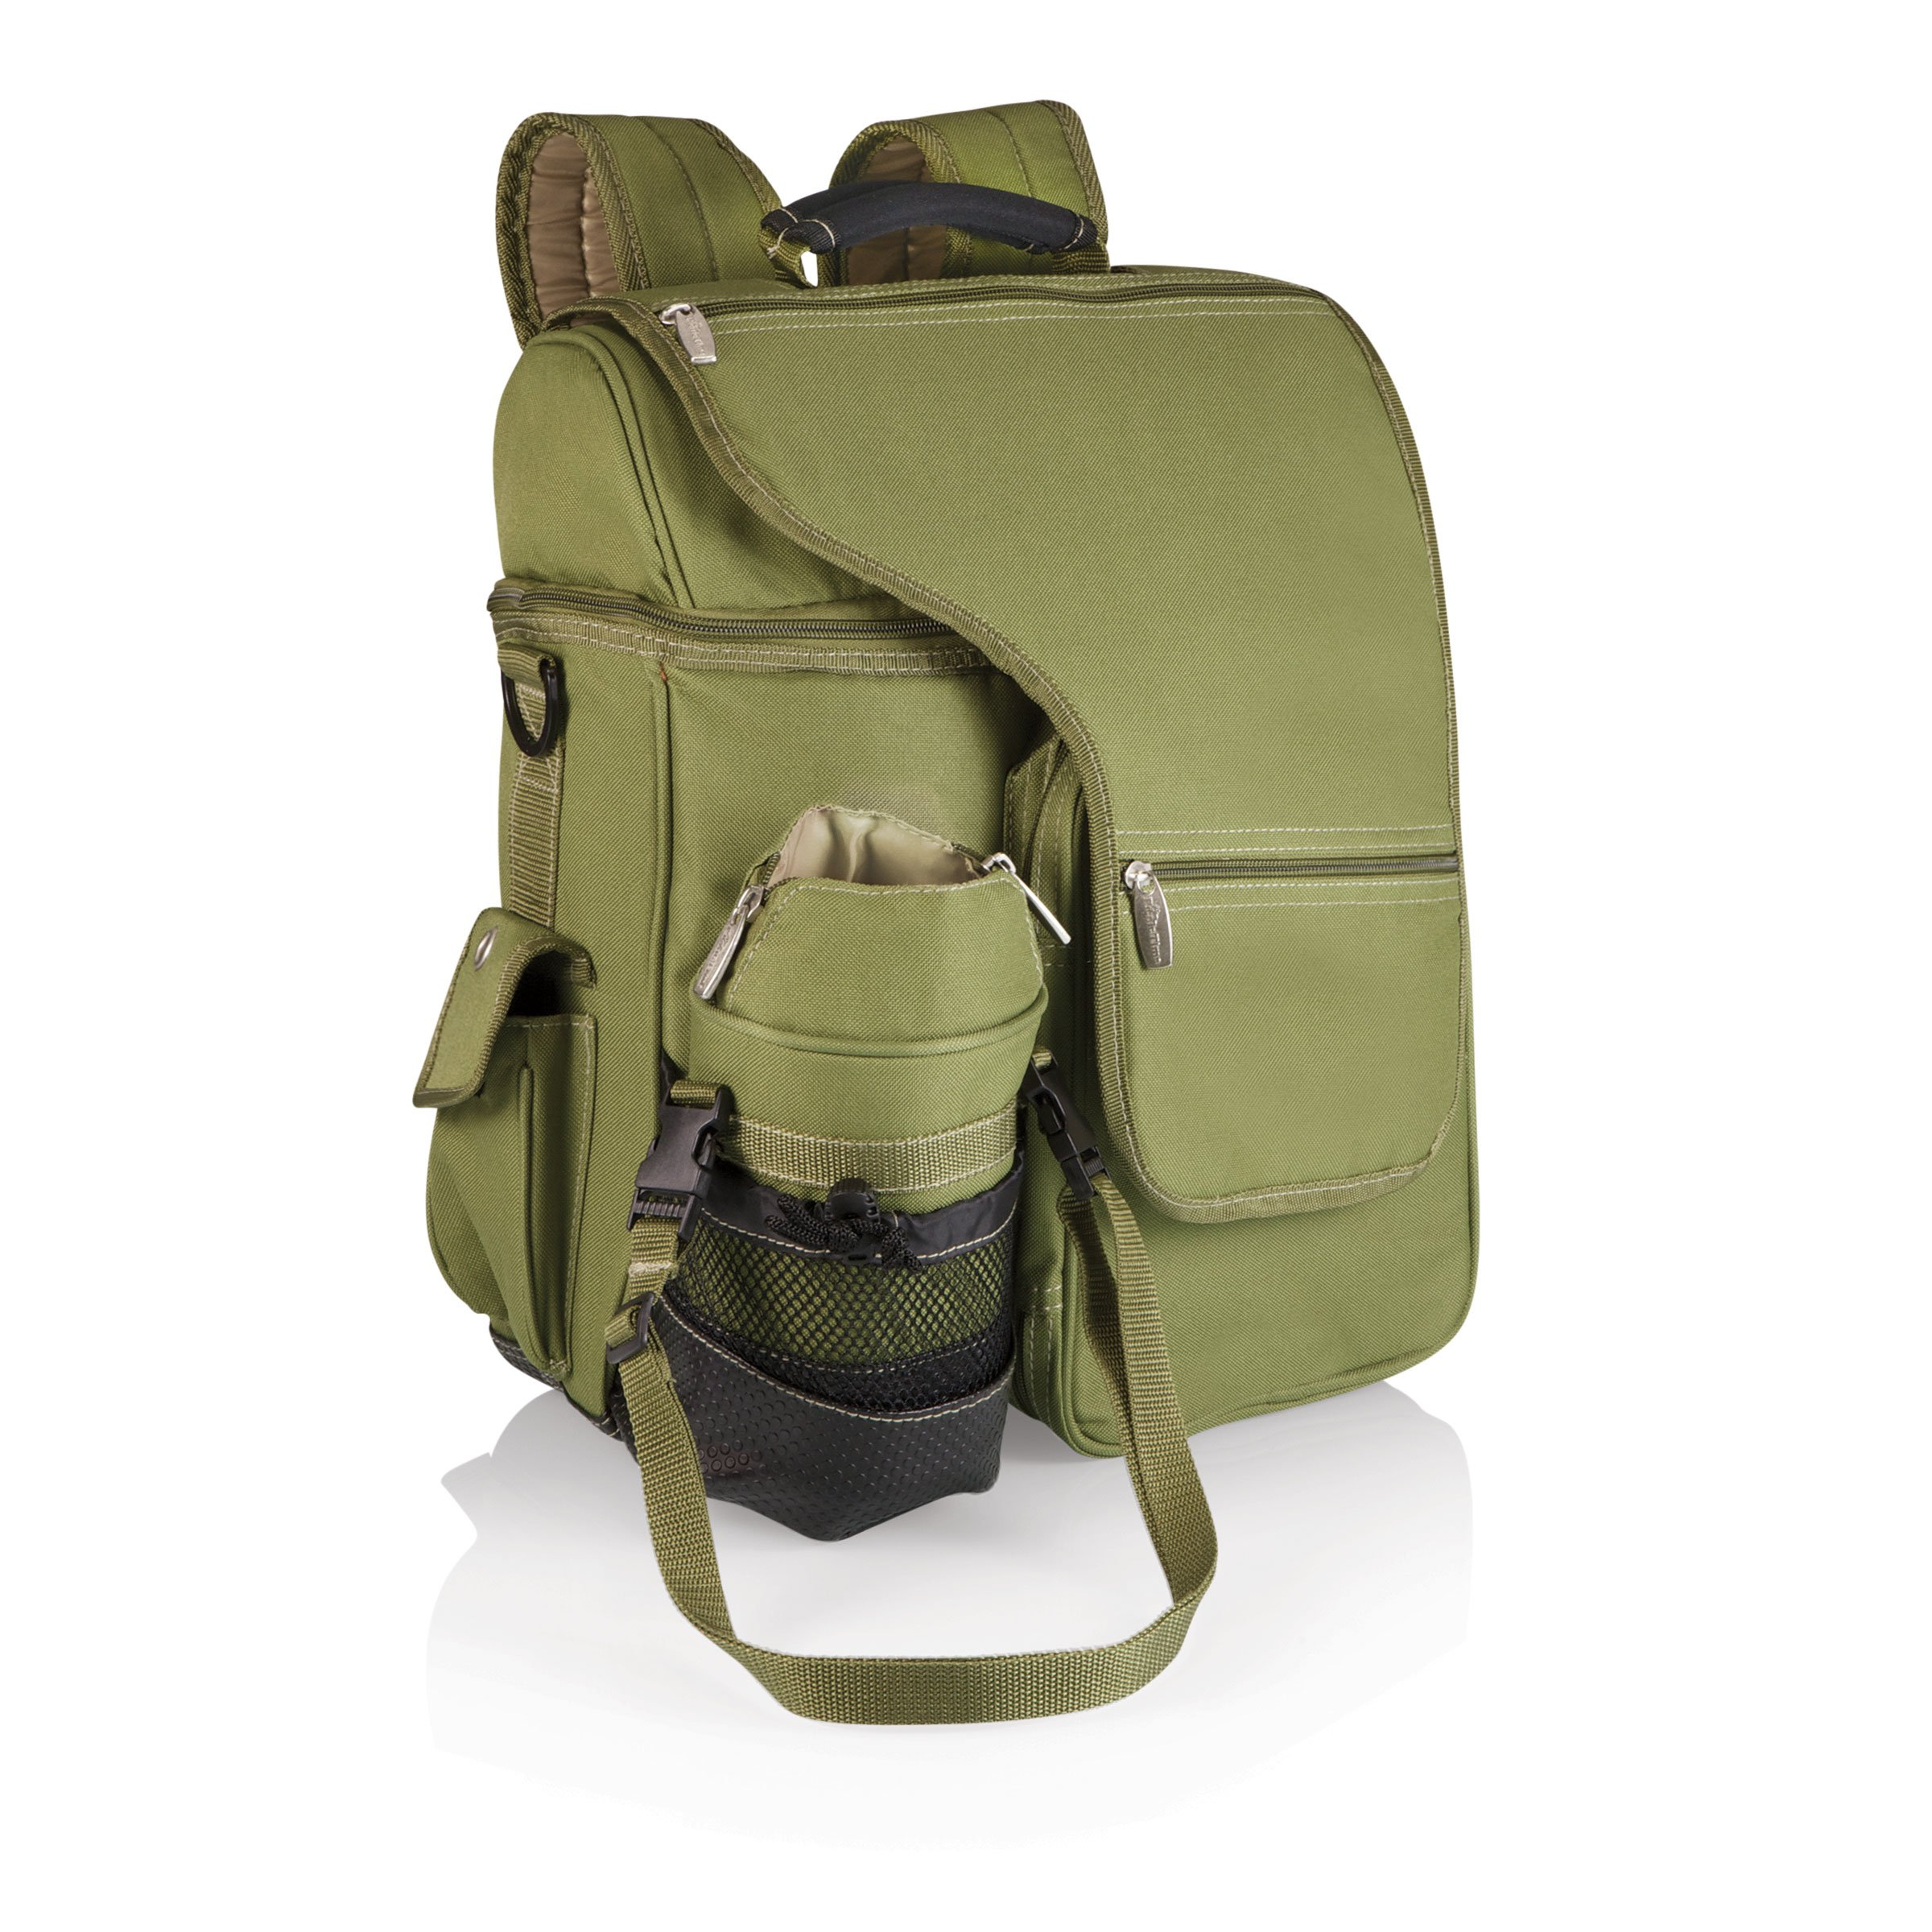 ONIVA - a Picnic Time Brand Turismo Insulated Backpack Cooler, Olive by ONIVA - a Picnic Time brand